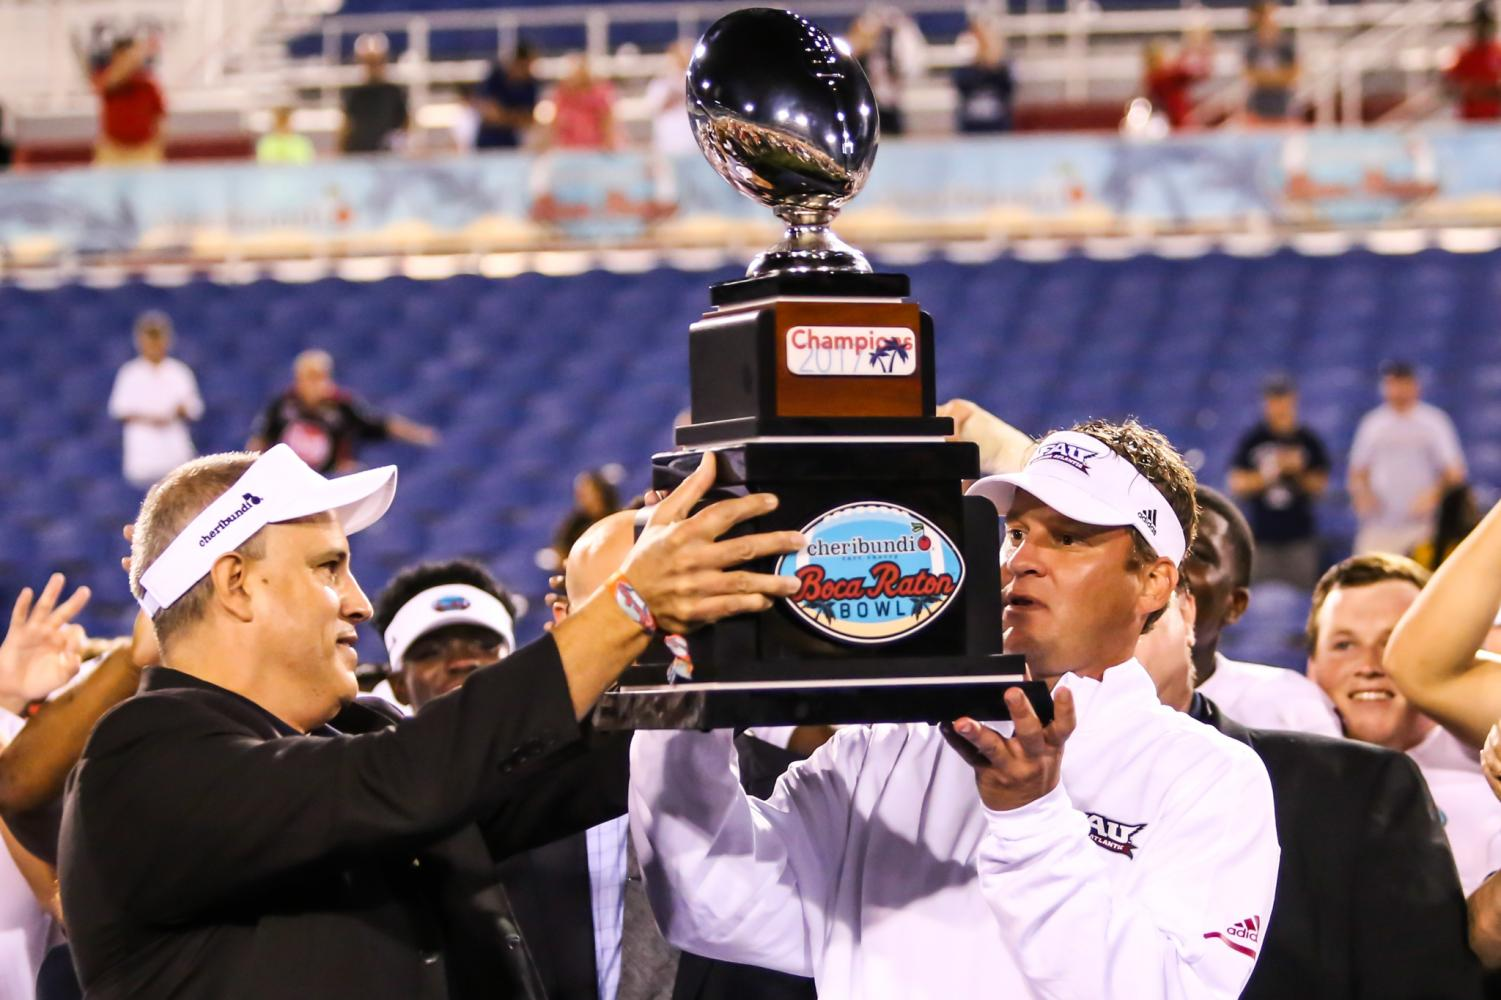 FAU head coach Lane Kiffin is handed the Cheribundi Boca Raton Bowl trophy during the trophy ceremony after FAU's 50-3 victory Saturday night. Alexander Rodriguez | Features Editor